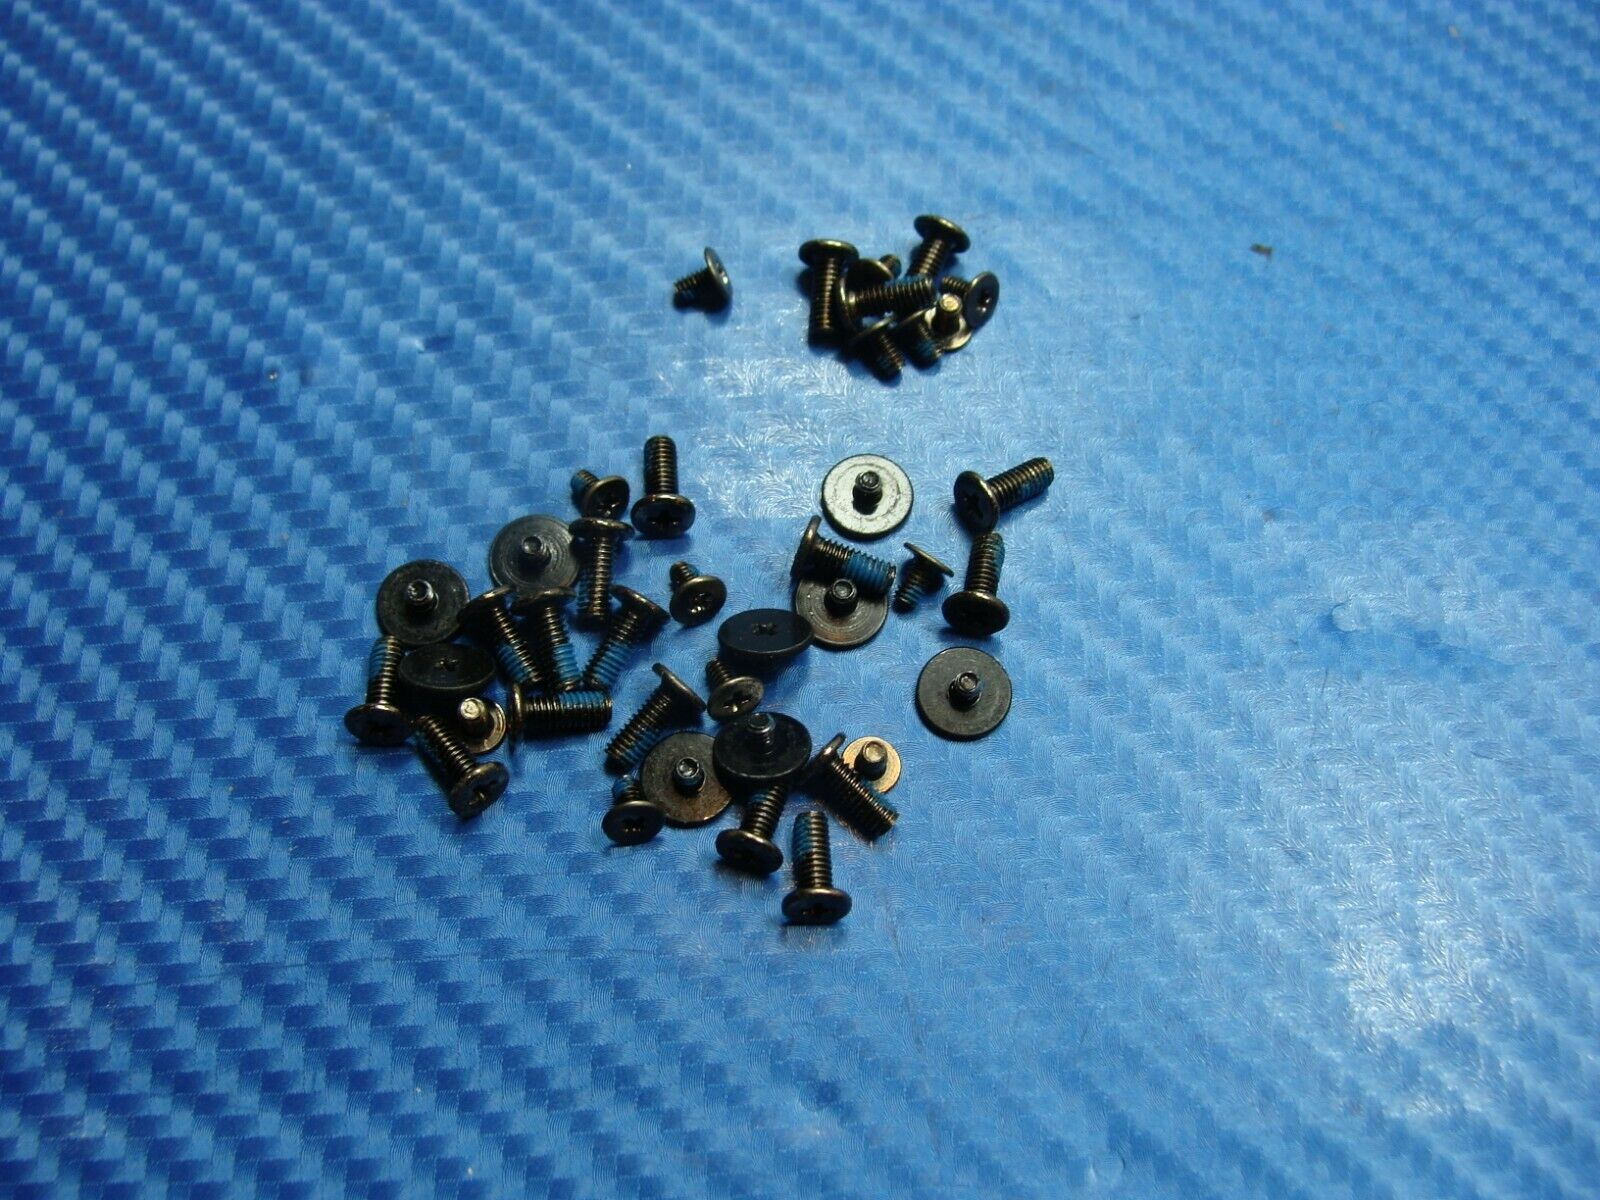 Acer Aspire 15.6 R5-571T-57Z0 Genuine Screw Set Screws For Repair ScrewSet GLP  - $8.99